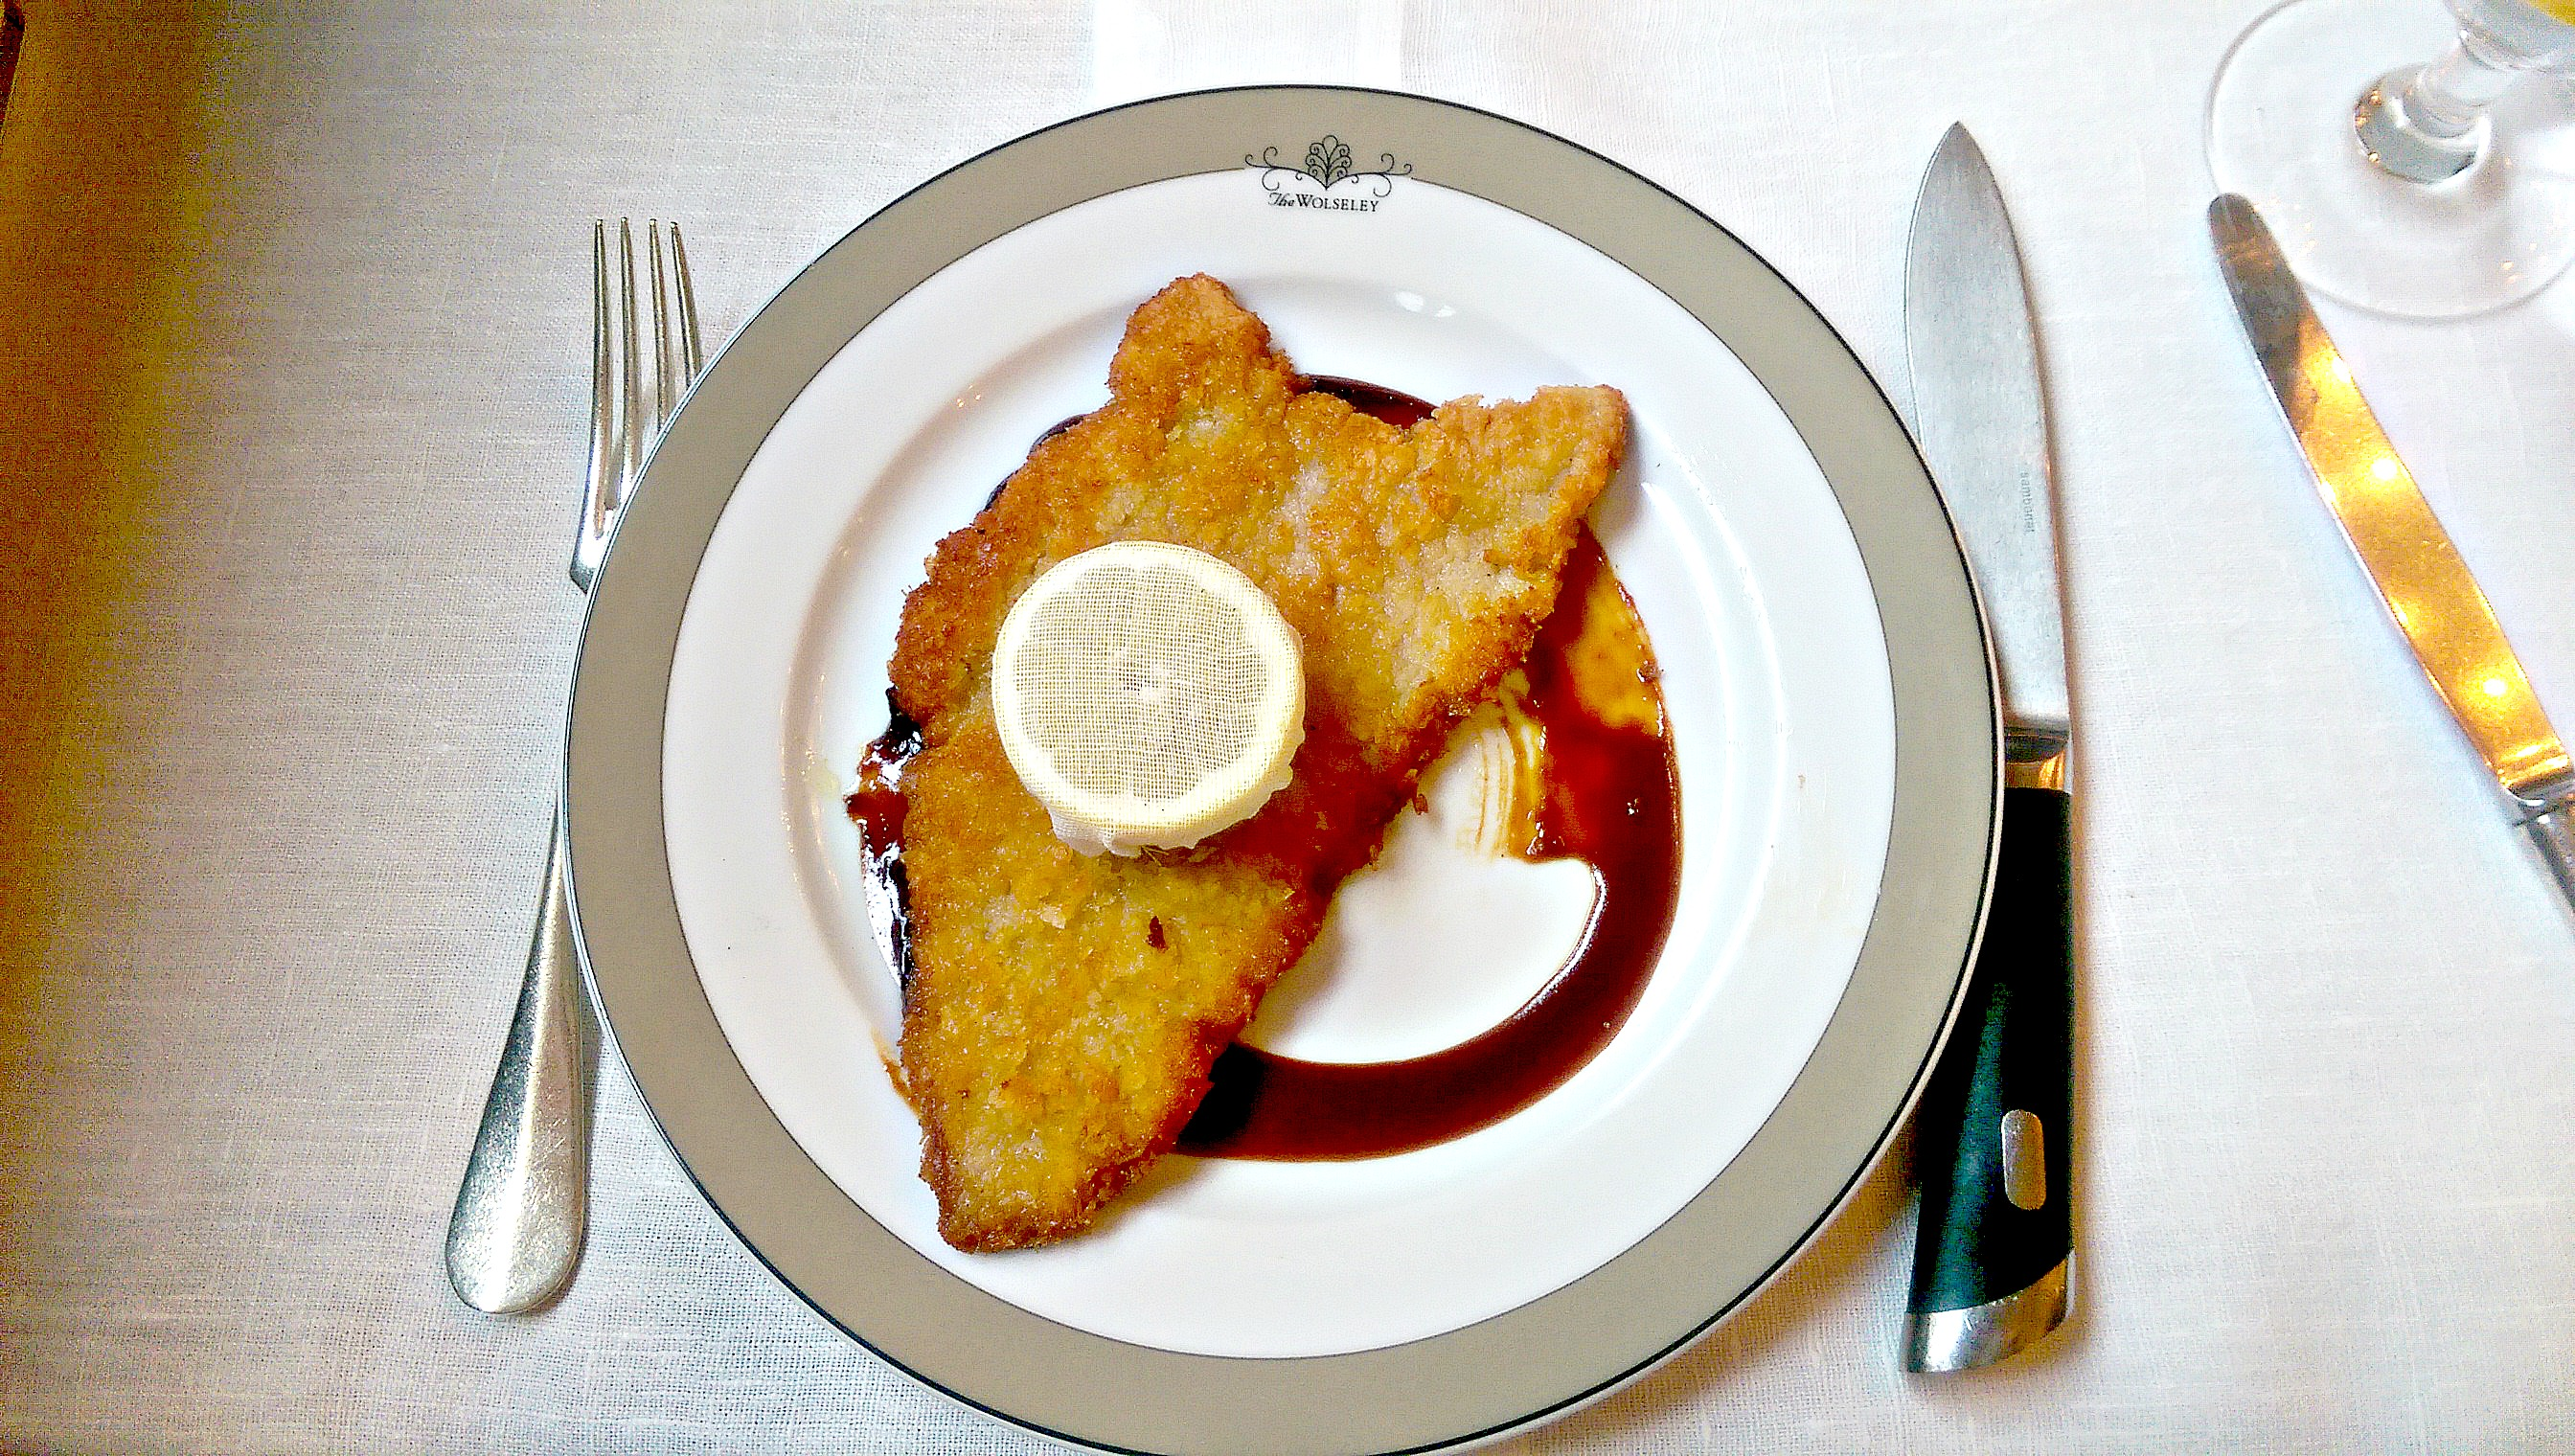 The Wolseley schnitzel